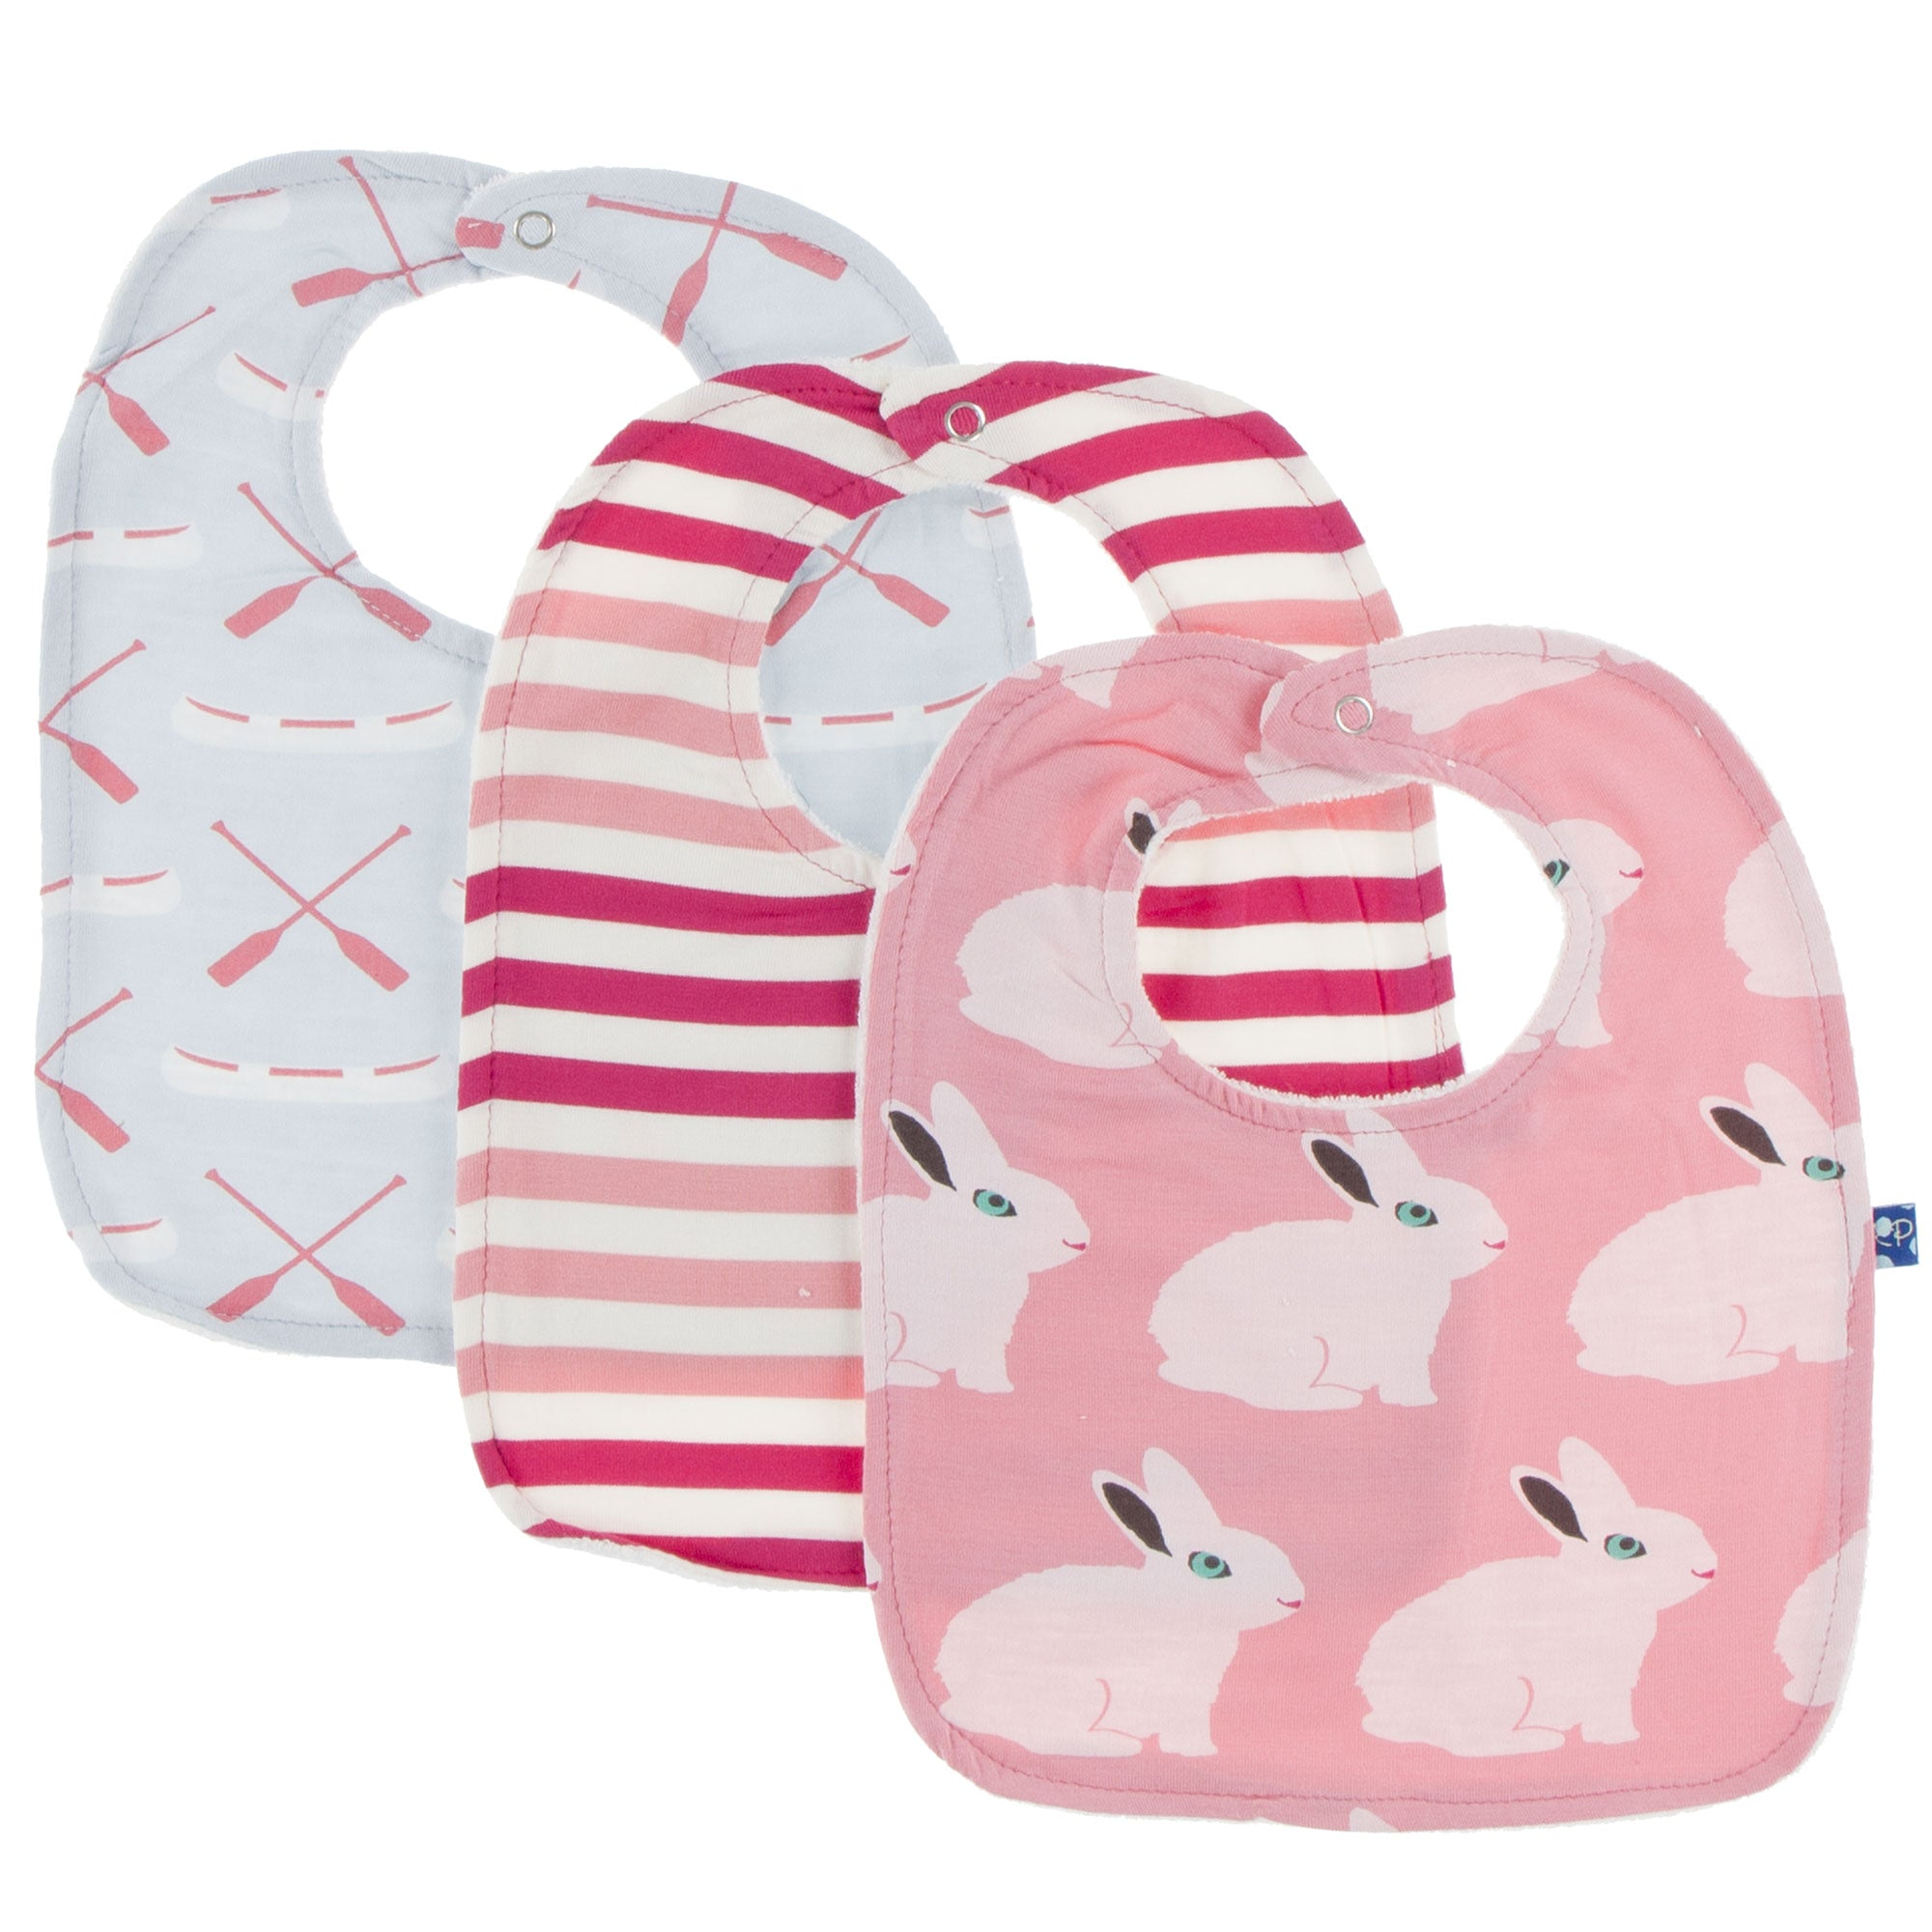 KicKee Pants Bib Set - Dew Paddles and Canoe, Forest Fruit Stripe